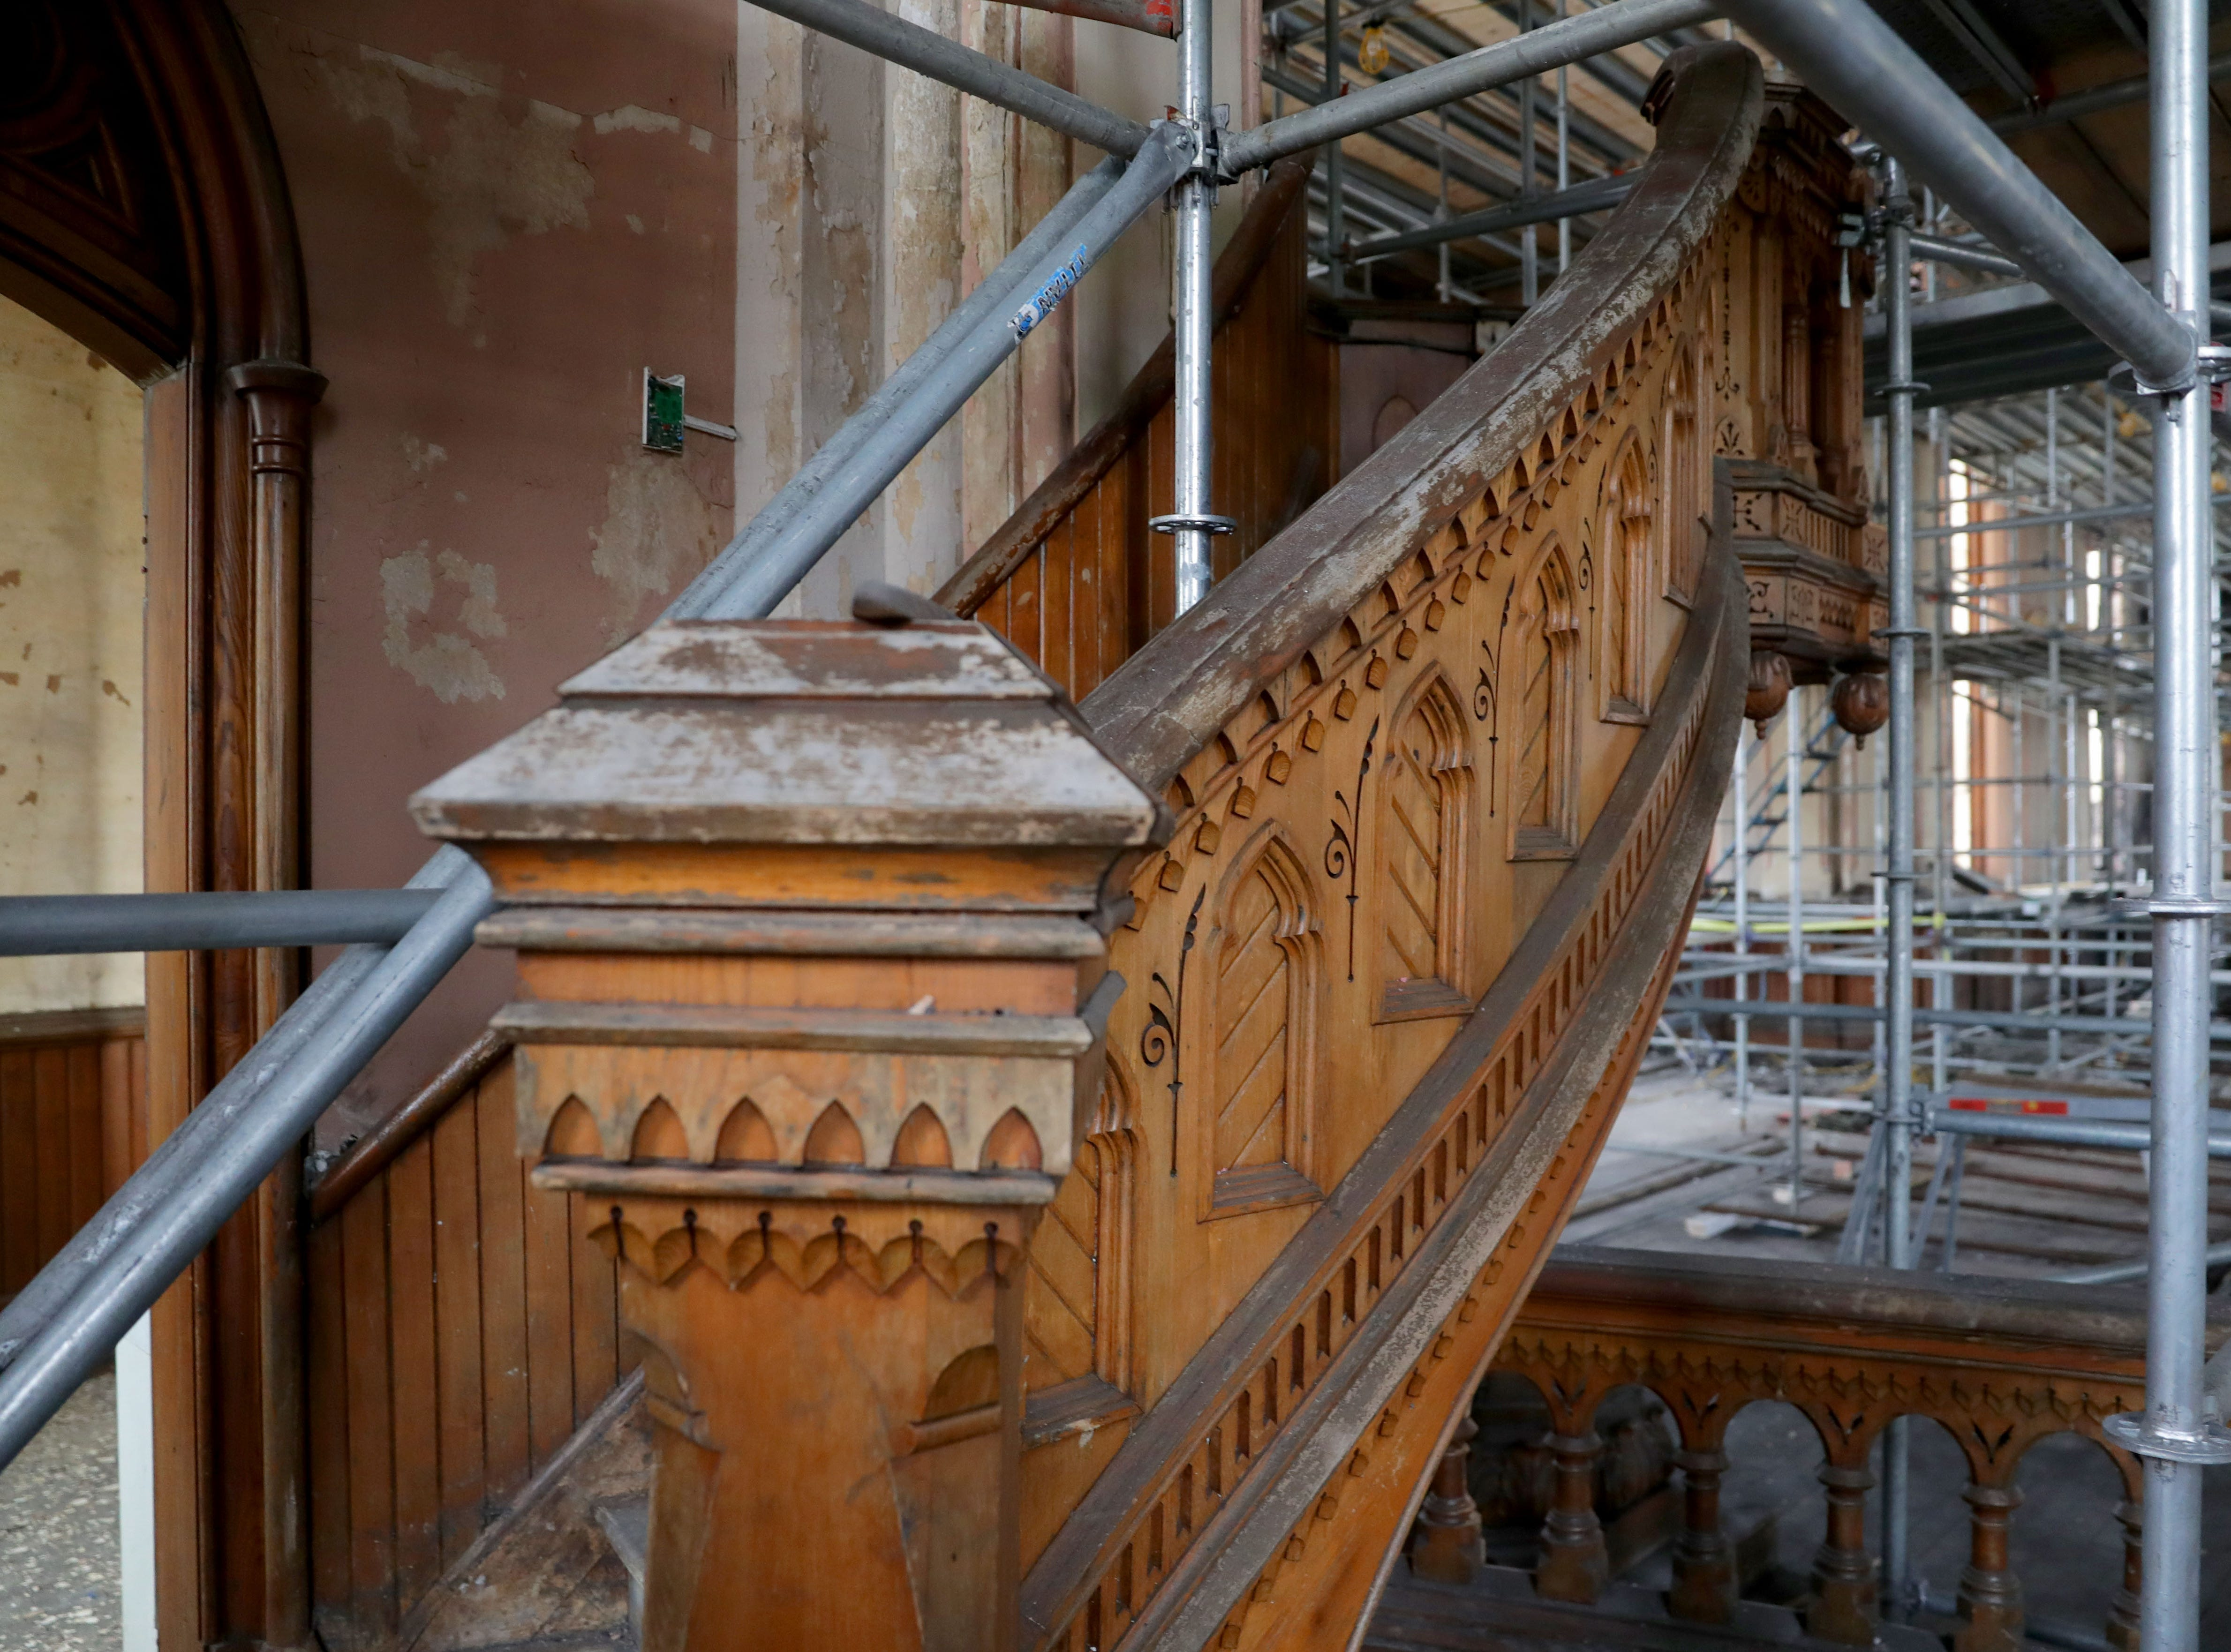 A stairway leading to a pulpit is surrounded in scaffolding at Trinity Evangelical Lutheran Church.